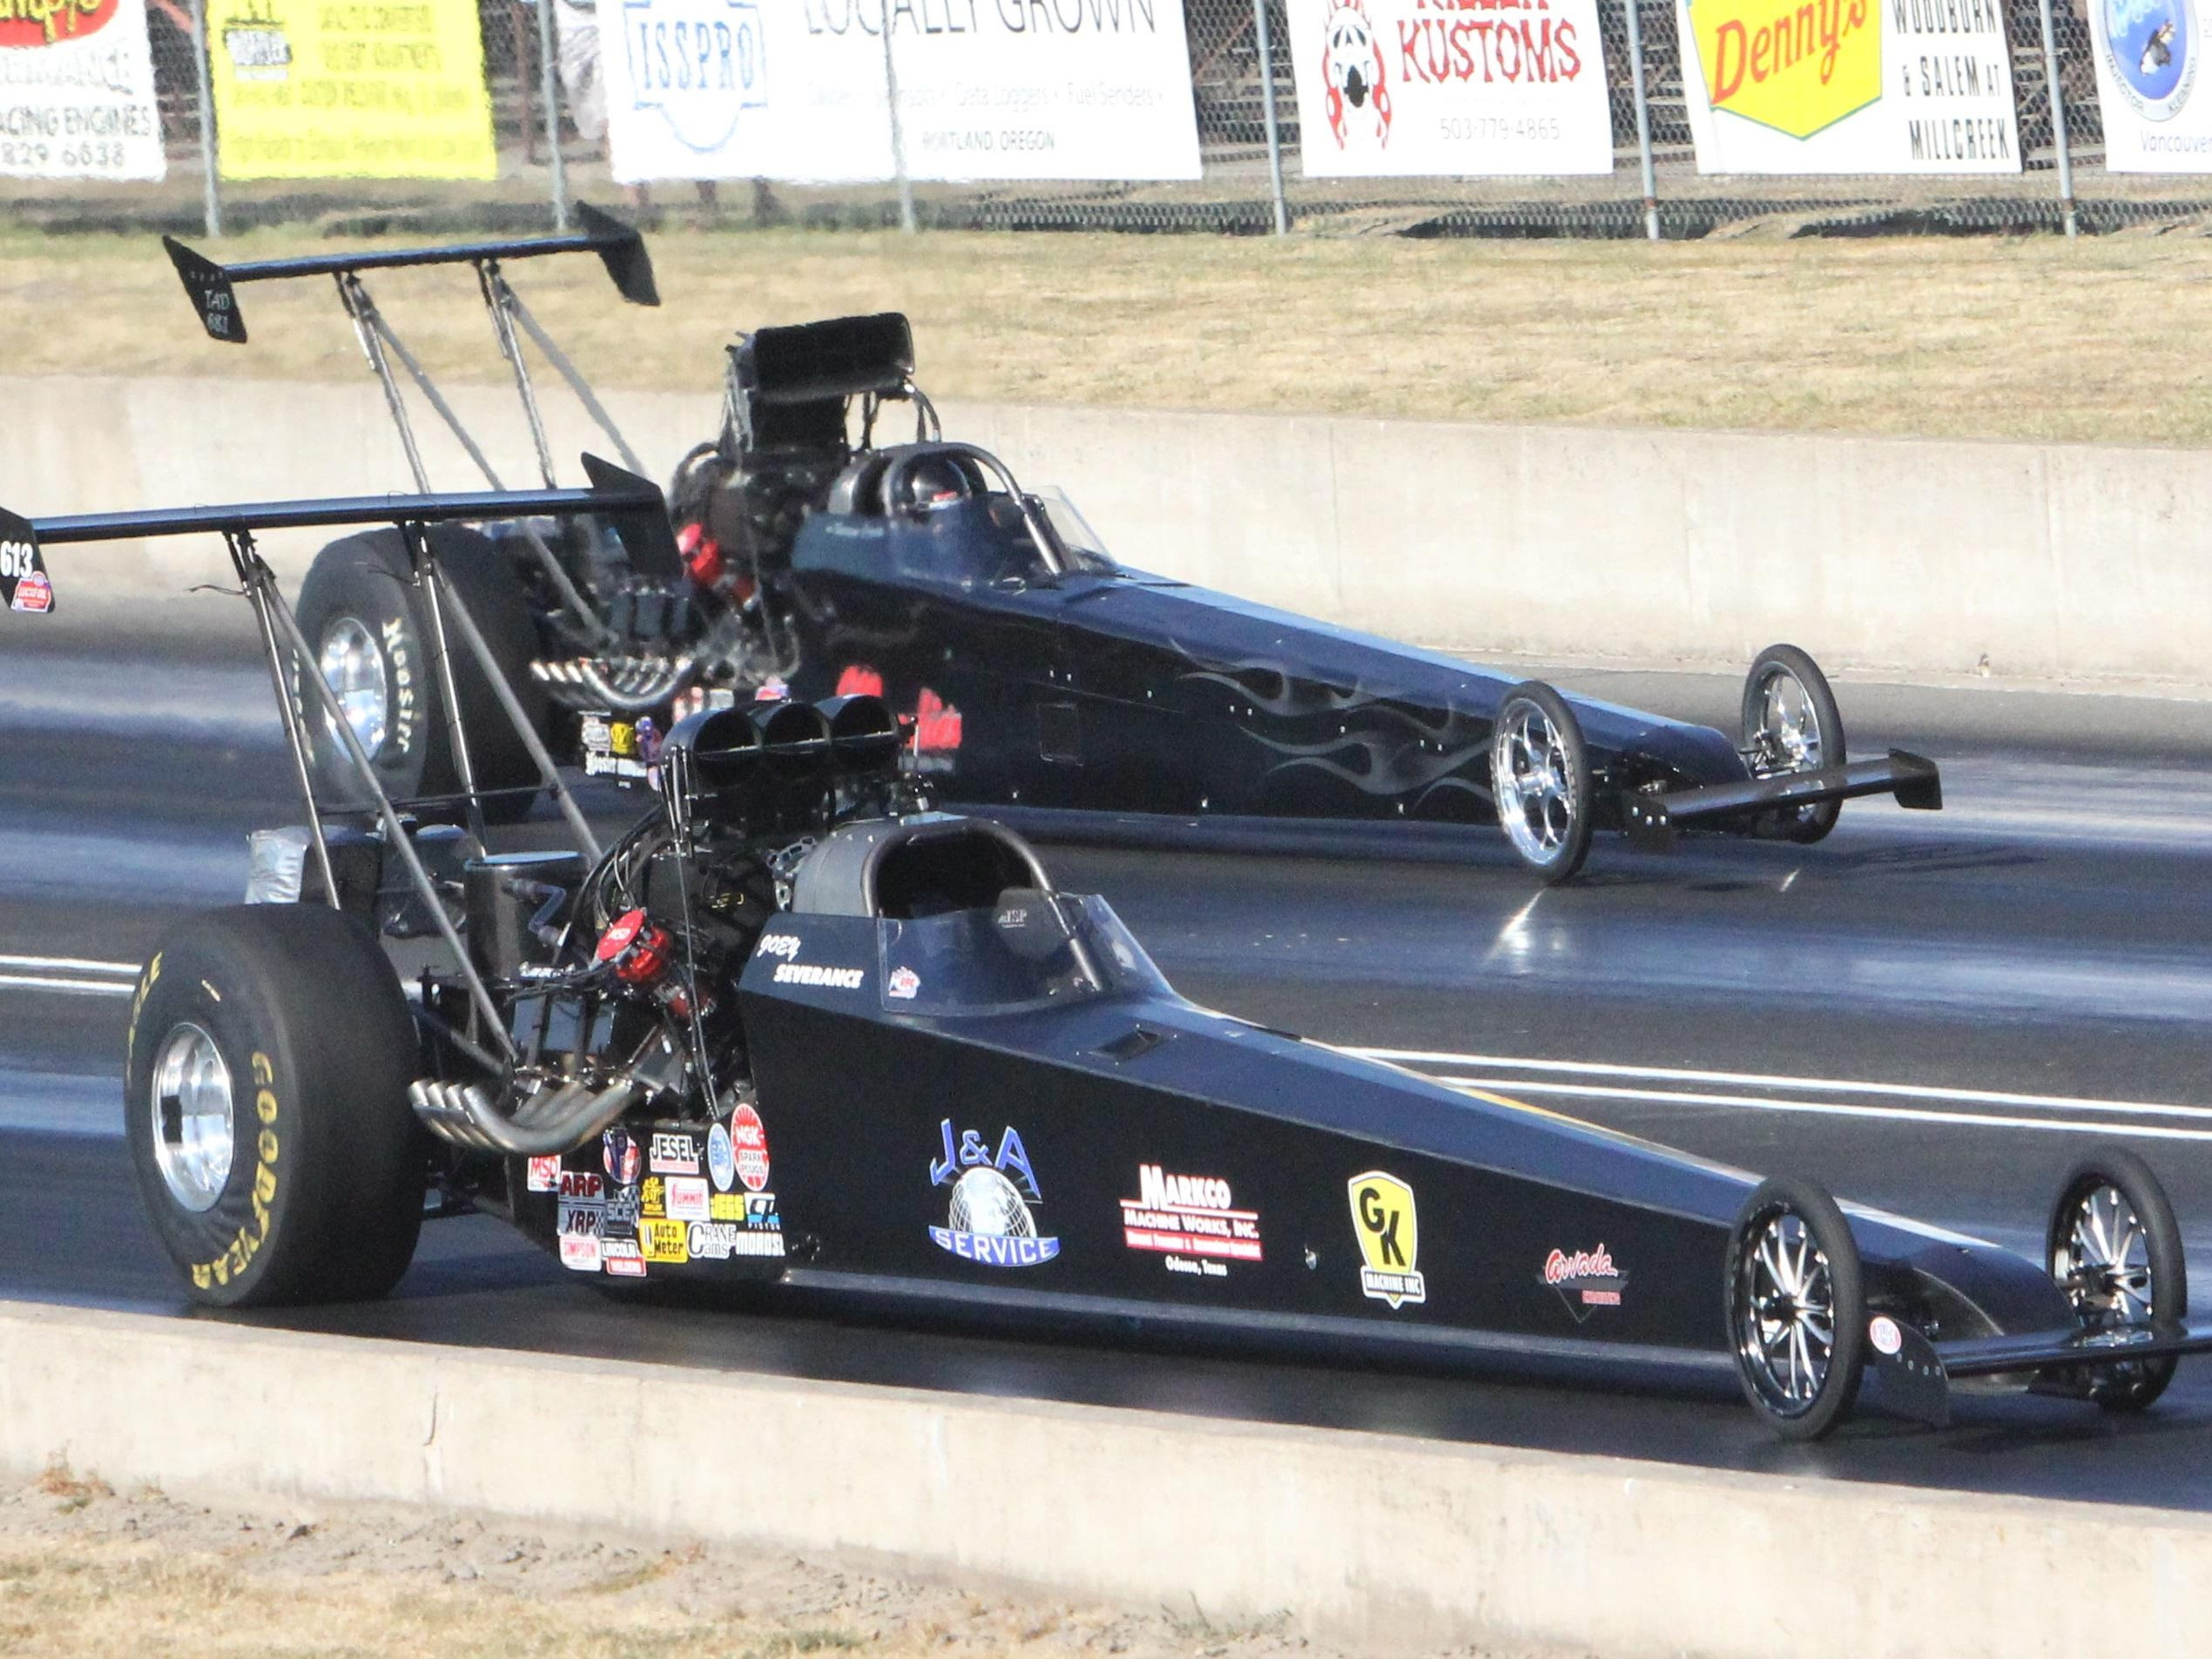 Joey Severance (near lane) leads Shawn Cowie at Woodburn Dragstrip on his way to winning the Top Alcohol Dragster category at the Les Schwab Challenge on Sunday, July 19, 2015.